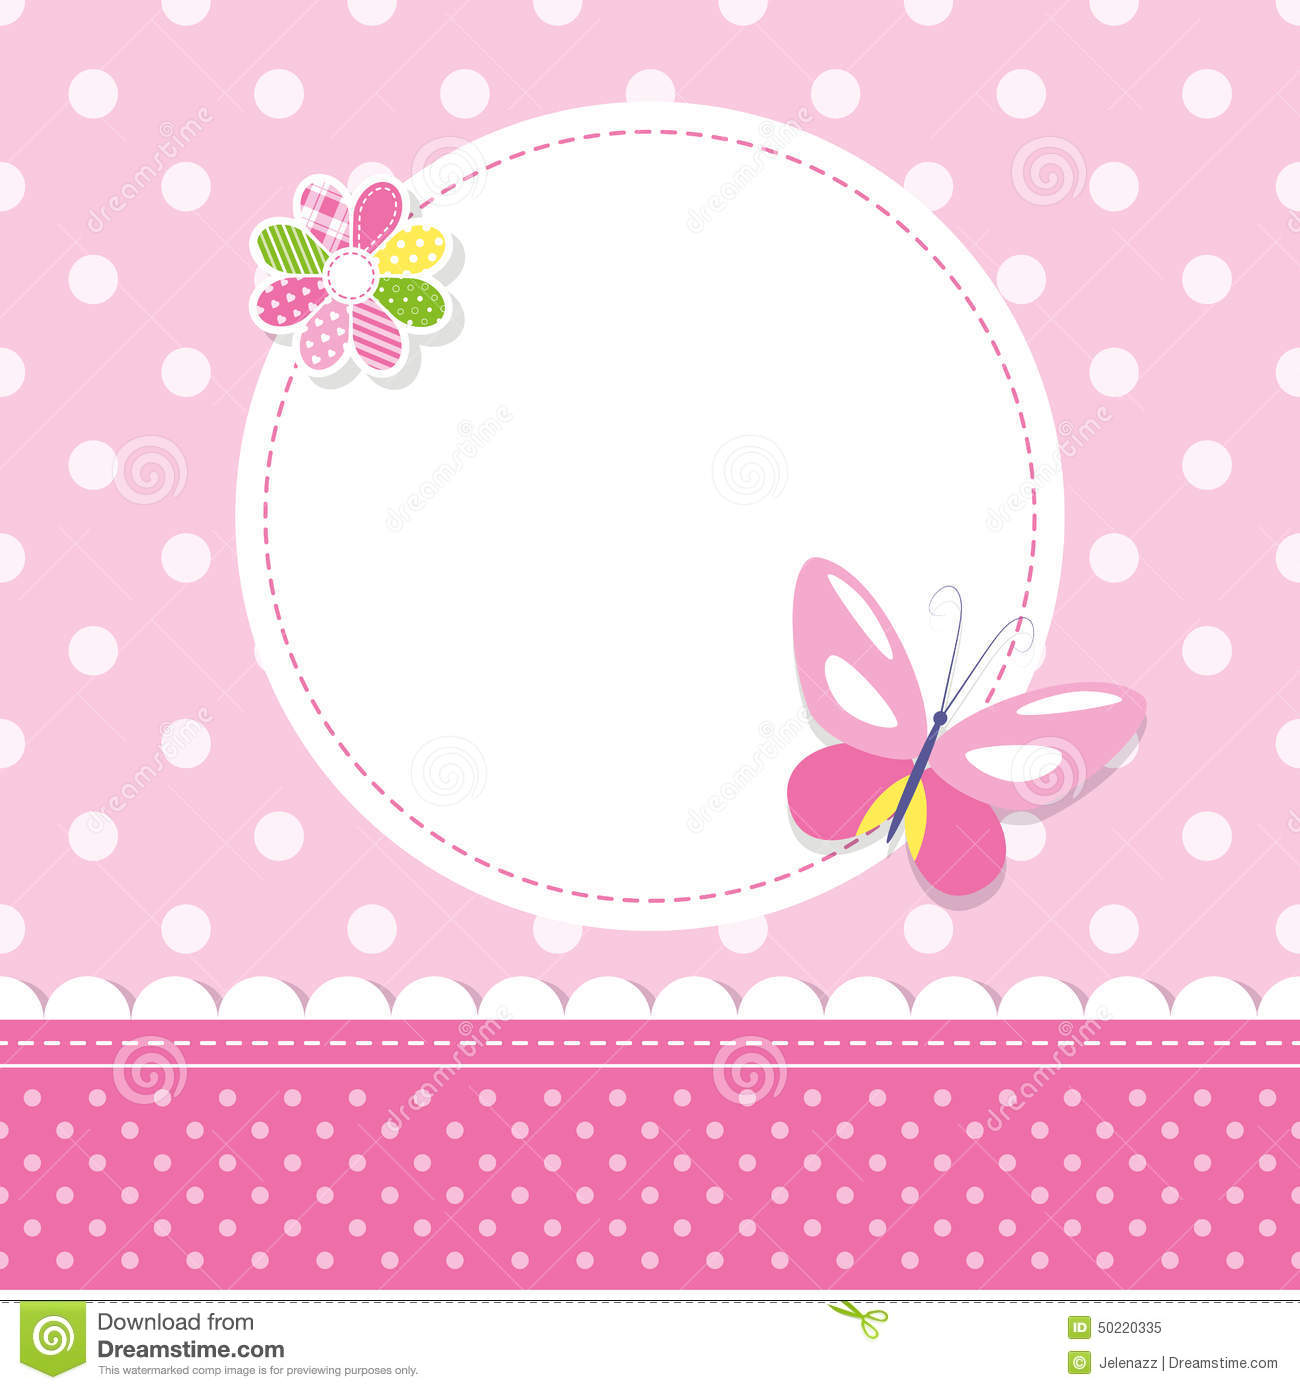 Pink Butterfly Baby Girl Greeting Card Stock Vector - Image: 50220335